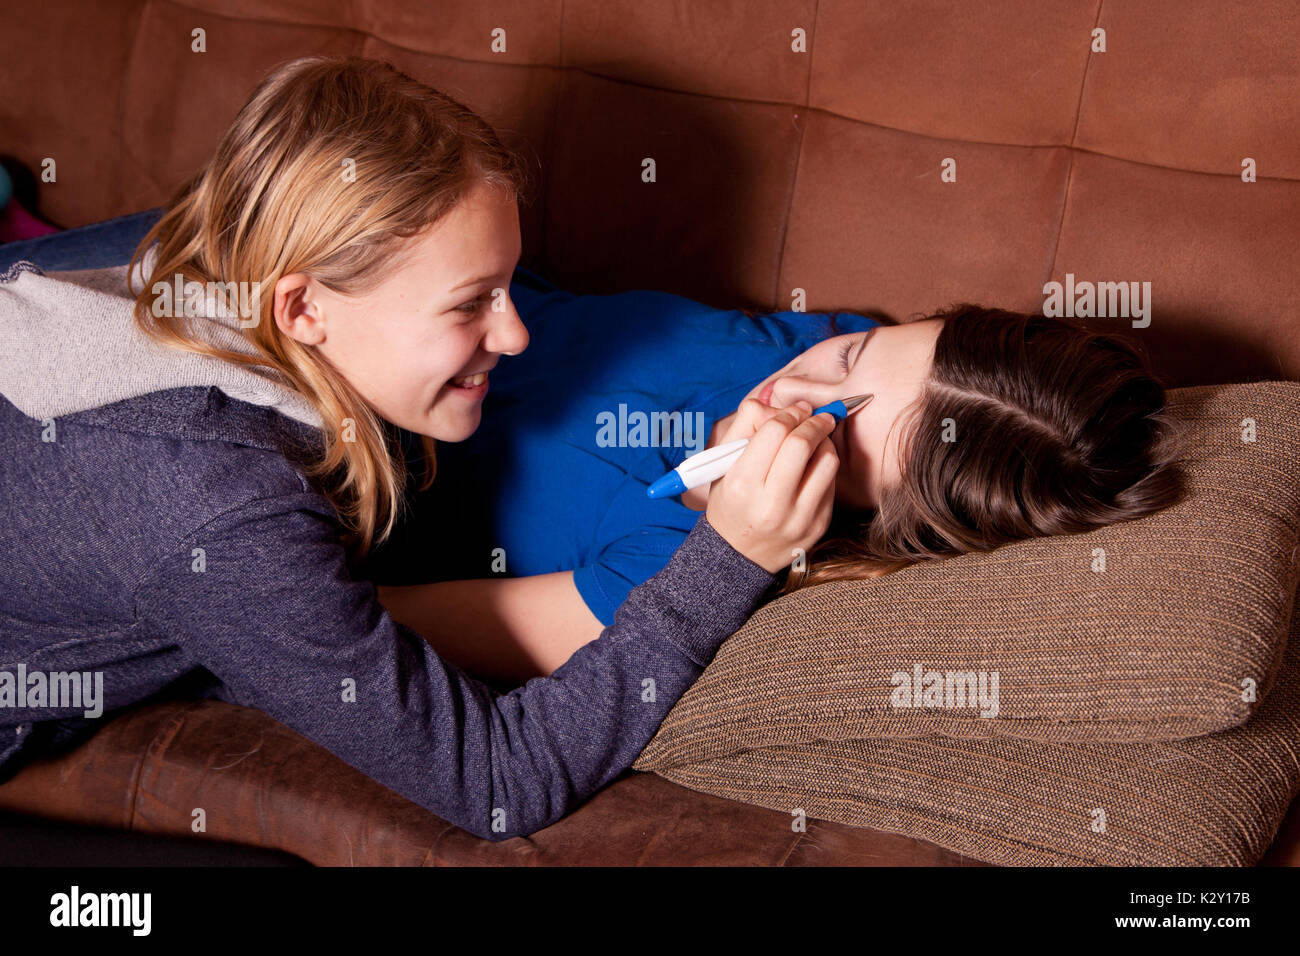 Pesky Little Sister Writes On Sisters Forehead While Asleep Or Sick Stock Image